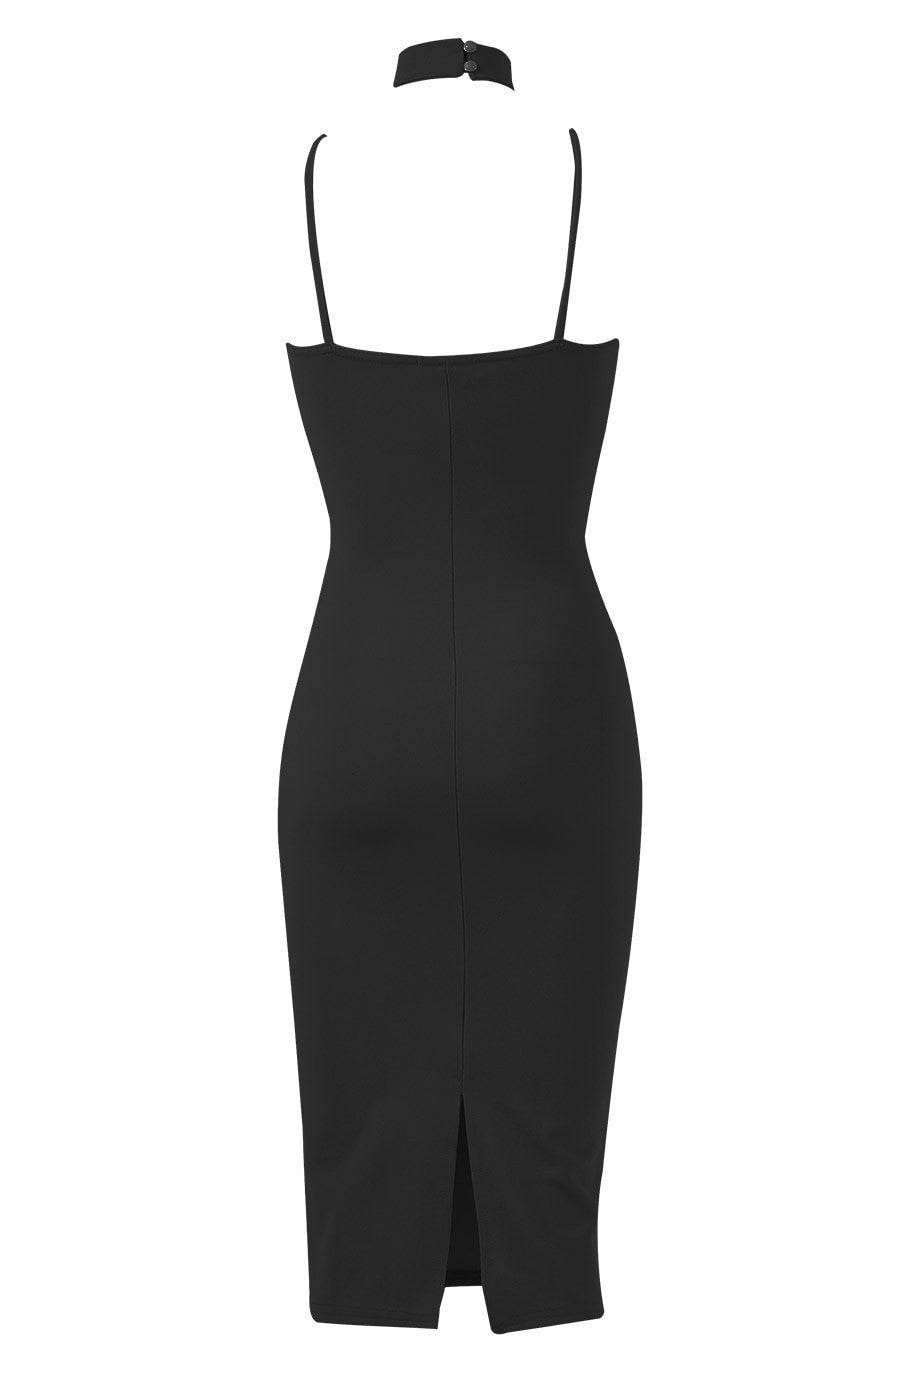 Chelsea Choker Cami Dress - Budget Babe Couture